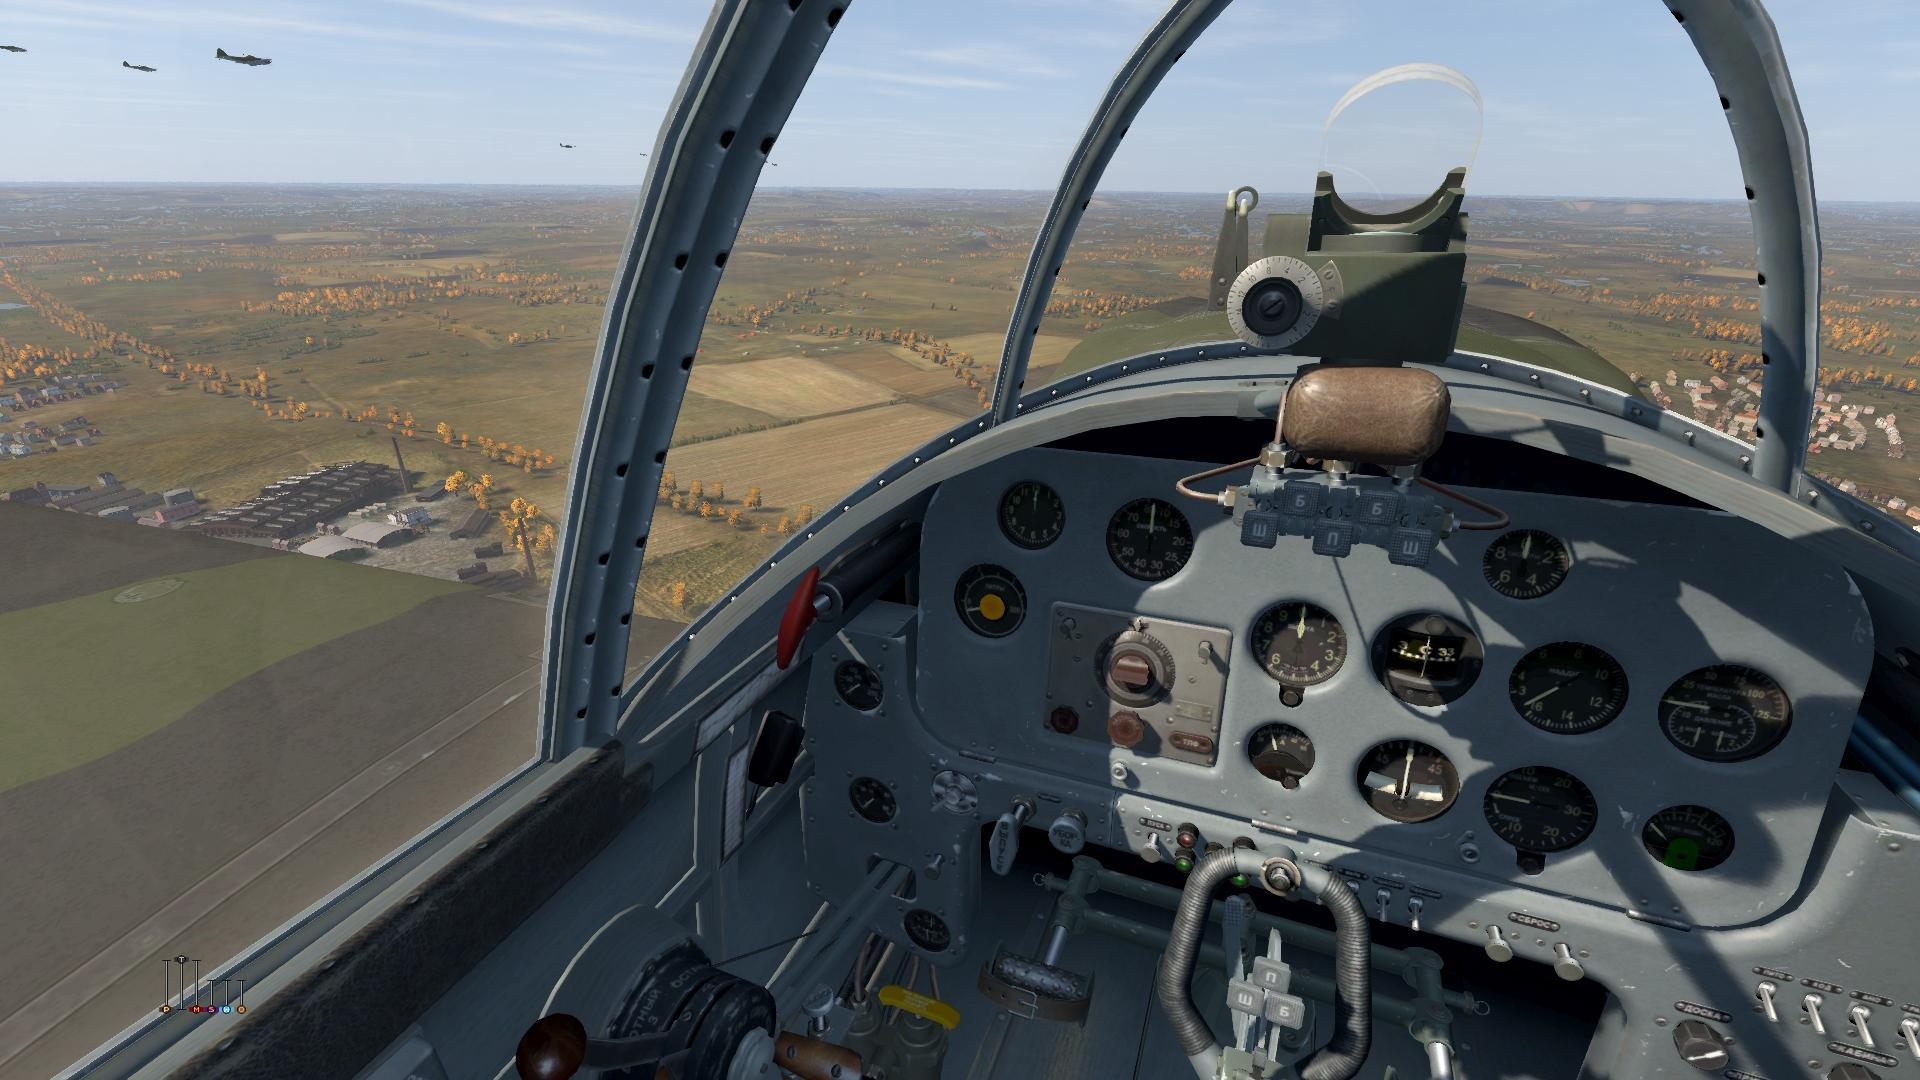 http://forum.il2sturmovik.net/uploads/monthly_03_2013/post-74-0-77729200-1362165181.jpg